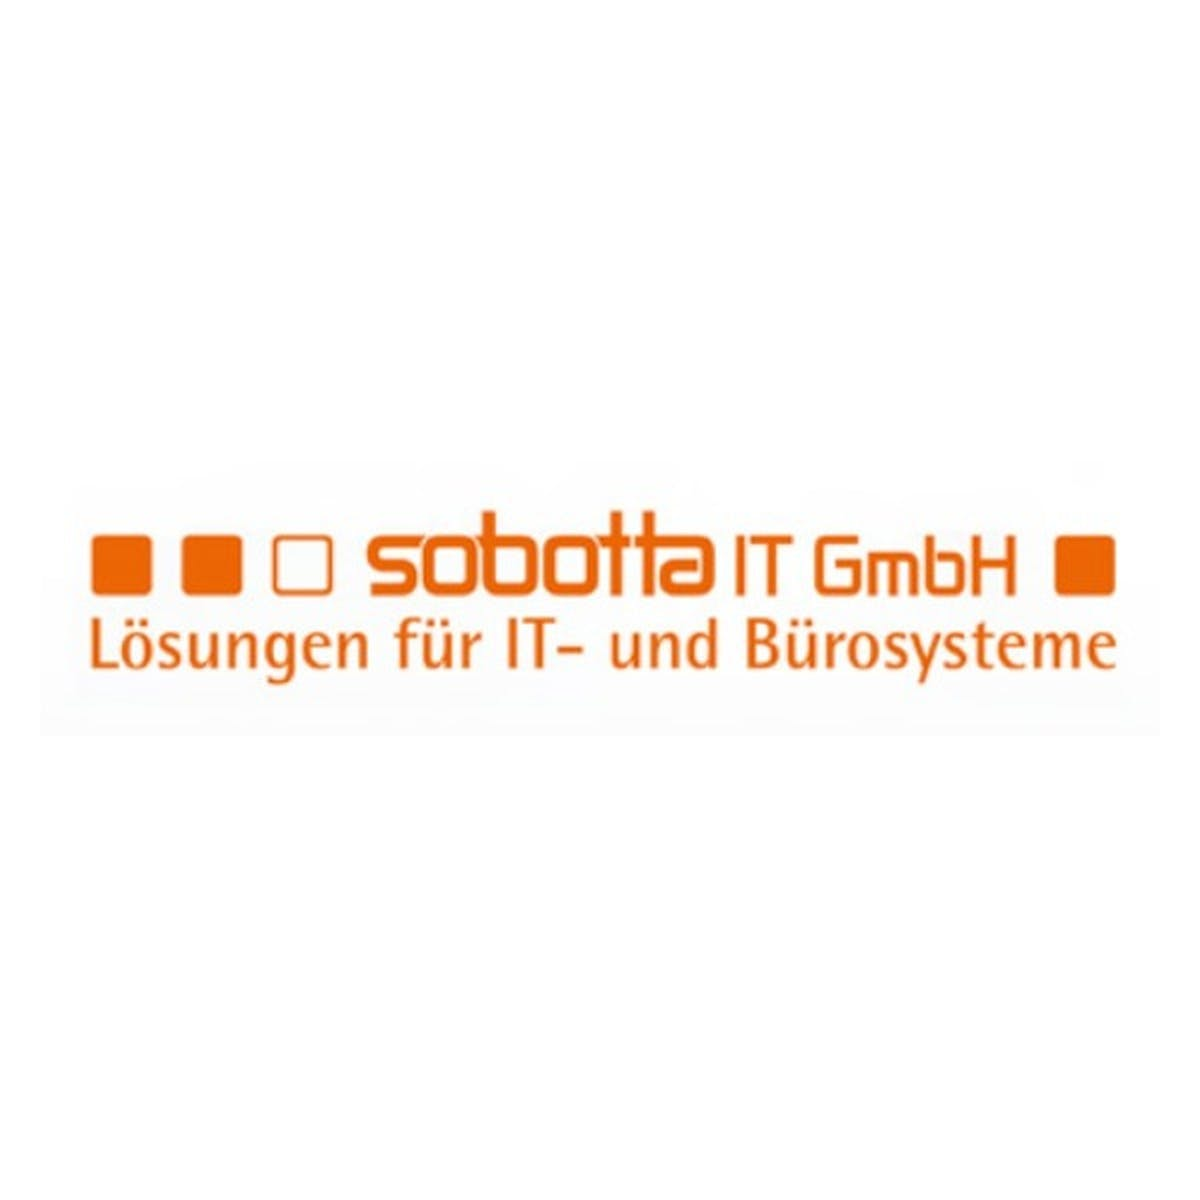 IT-Systemtechniker / IT-Systemadministrator (m/w/d)